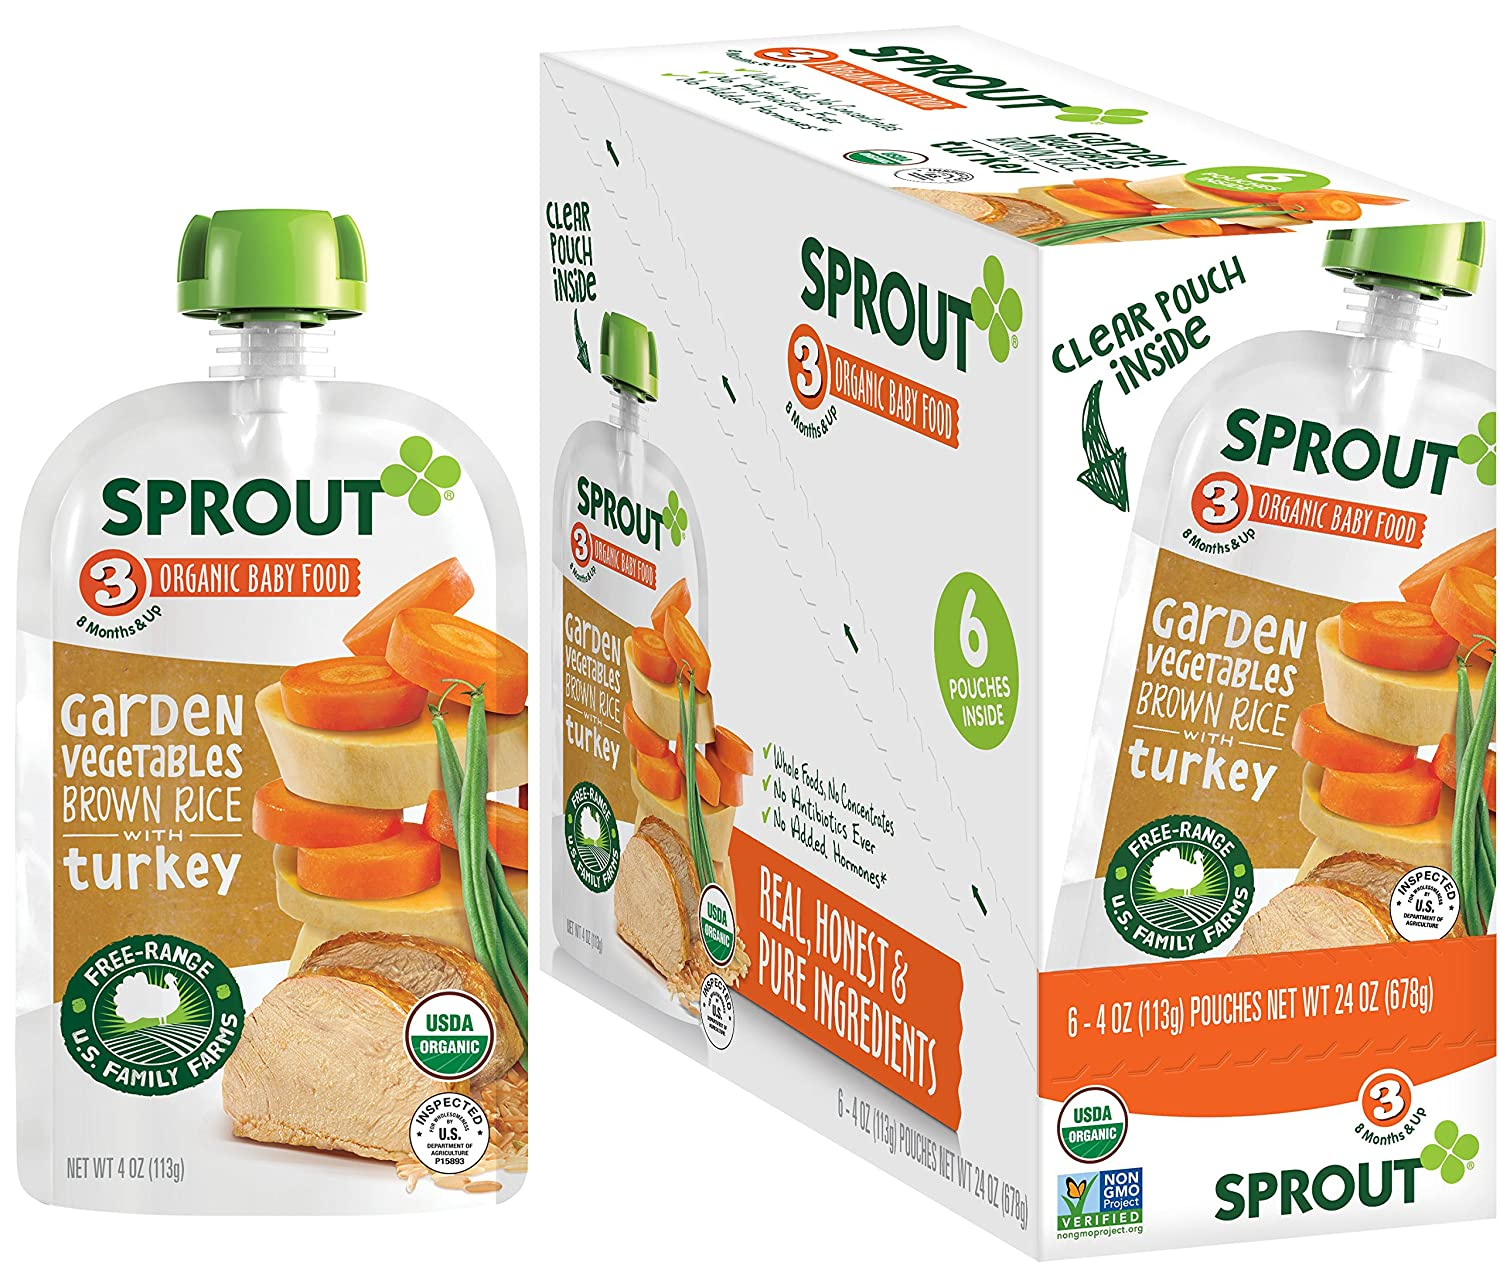 Sprout Organic Stage 3 Baby Food Pouches, Garden Vegetables Brown Rice w/ Turkey, 4 Ounce (Pack of 12)